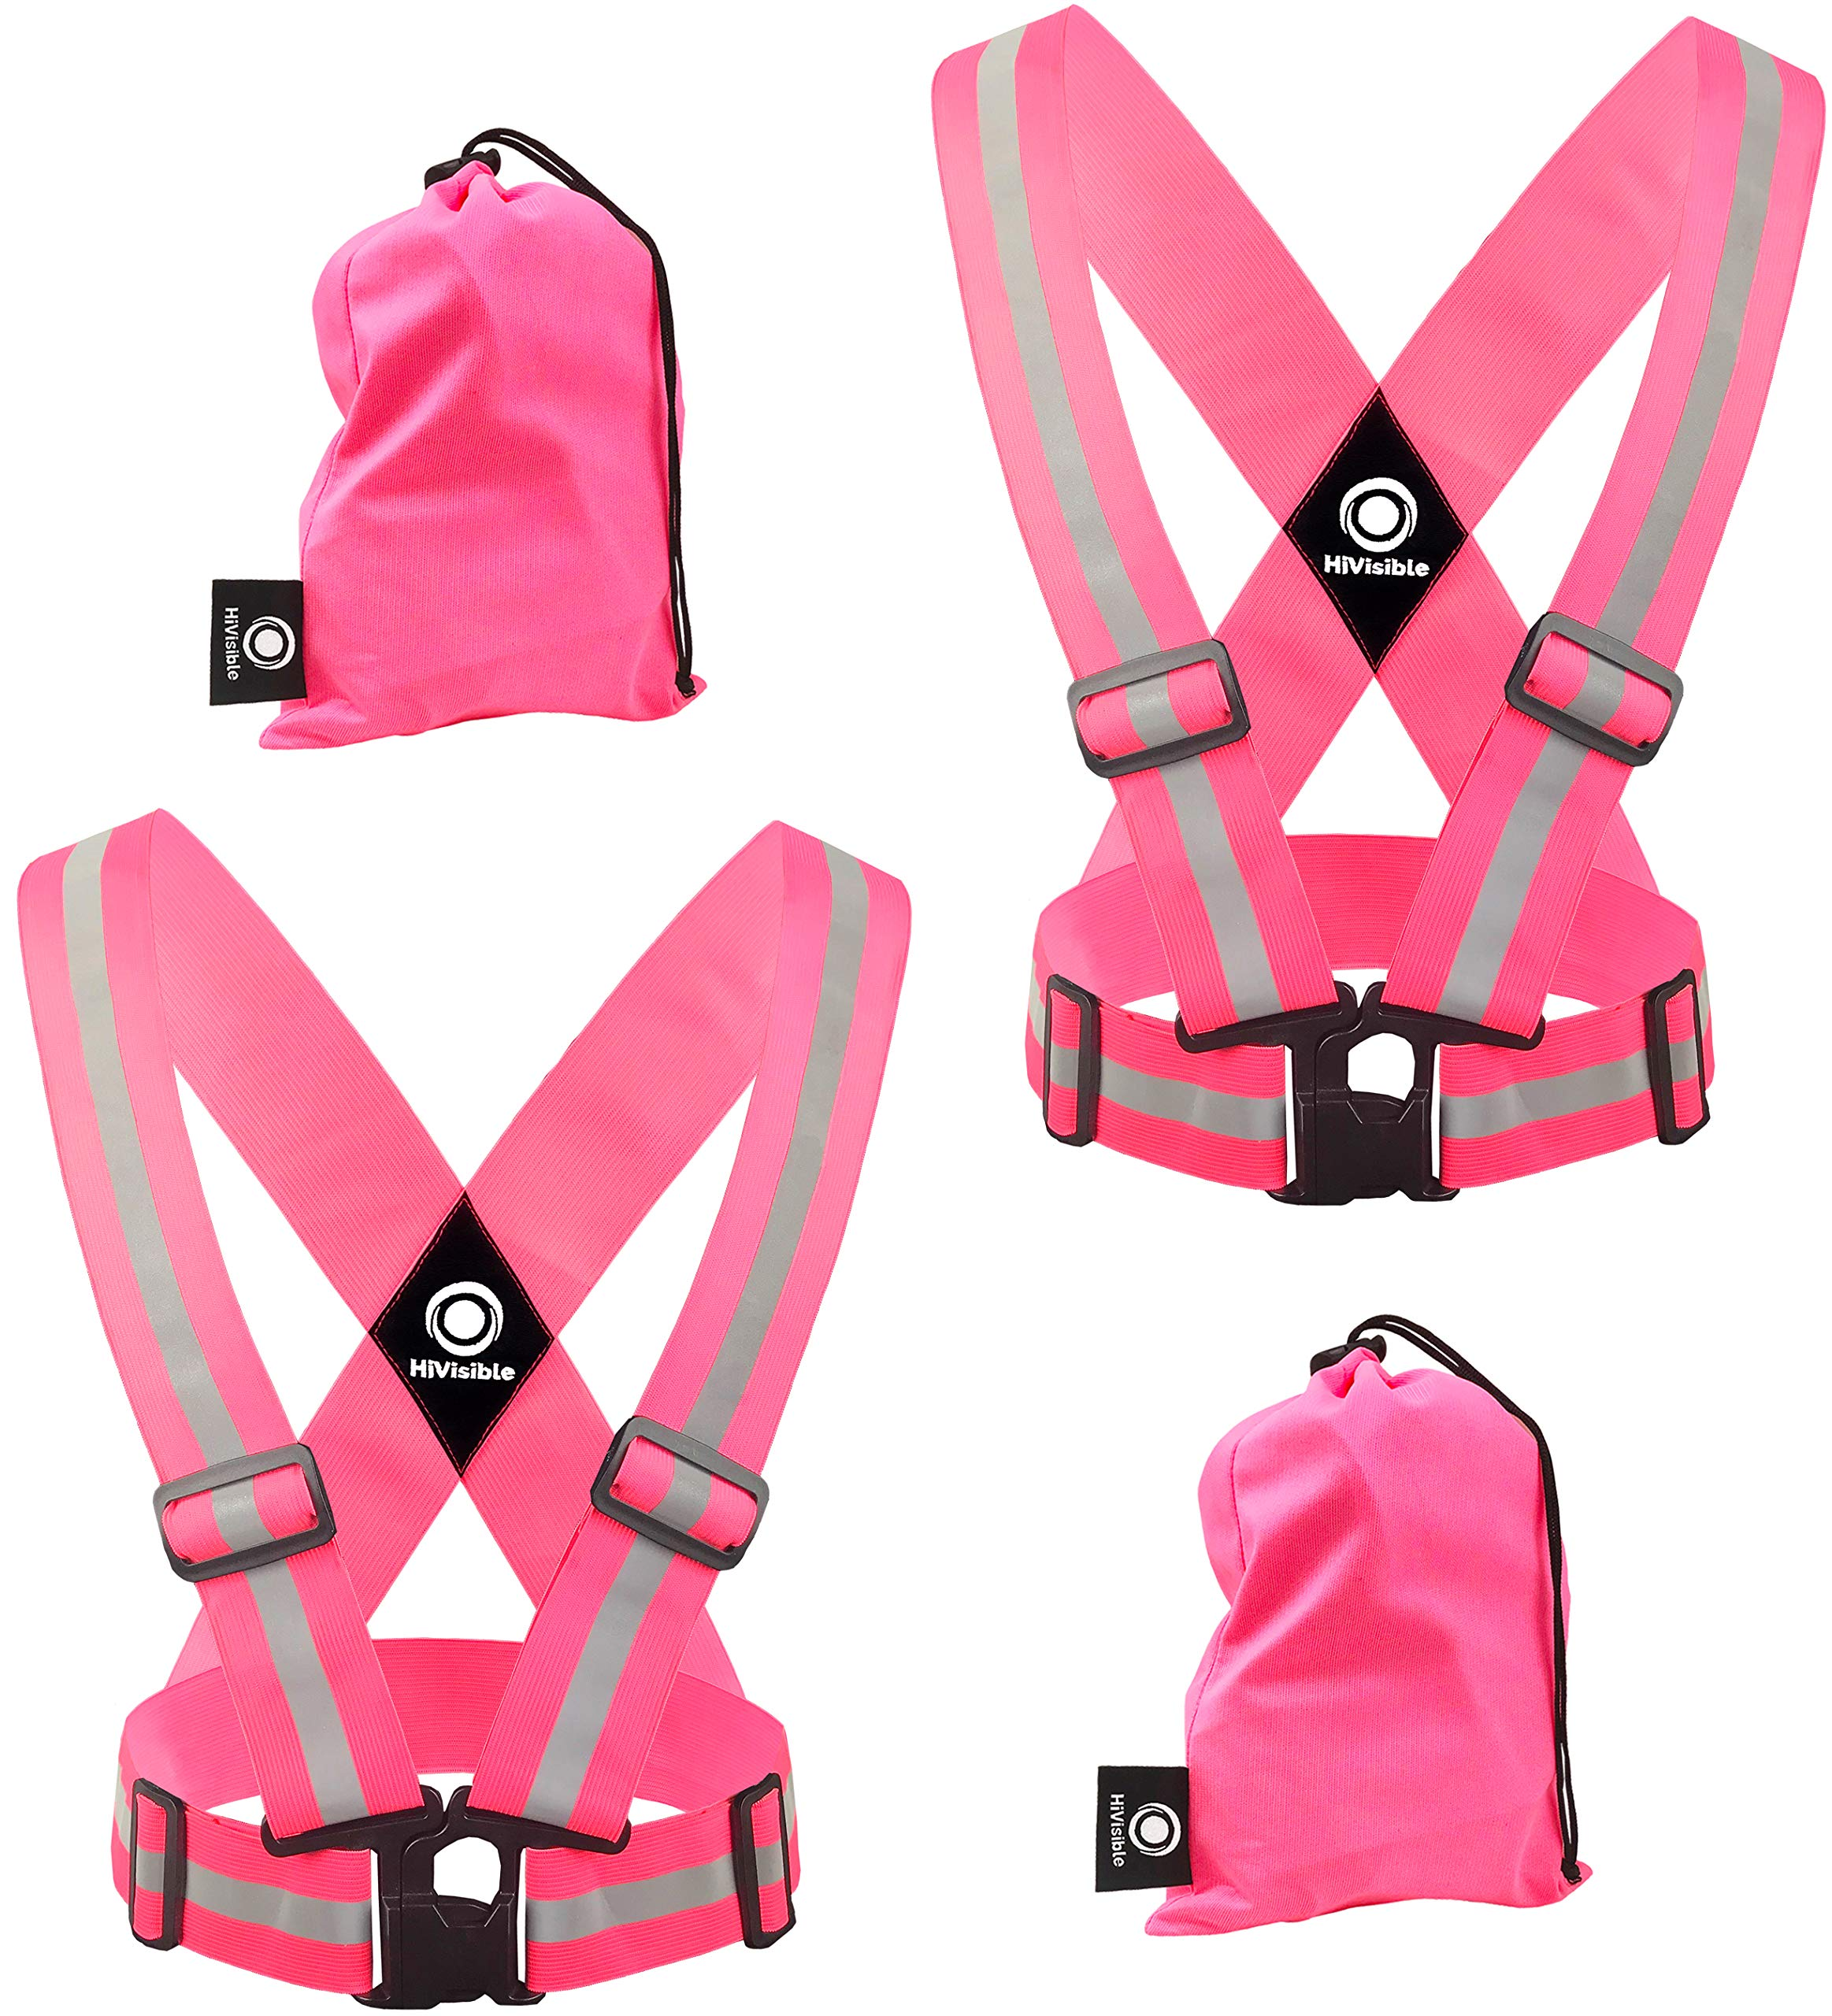 High Visibility Reflective Vest - Safety Reflector Strips Bands - Reflective Running Gear for Men and Women for Night Running, Biking, Walking (2 x Pink Vest)